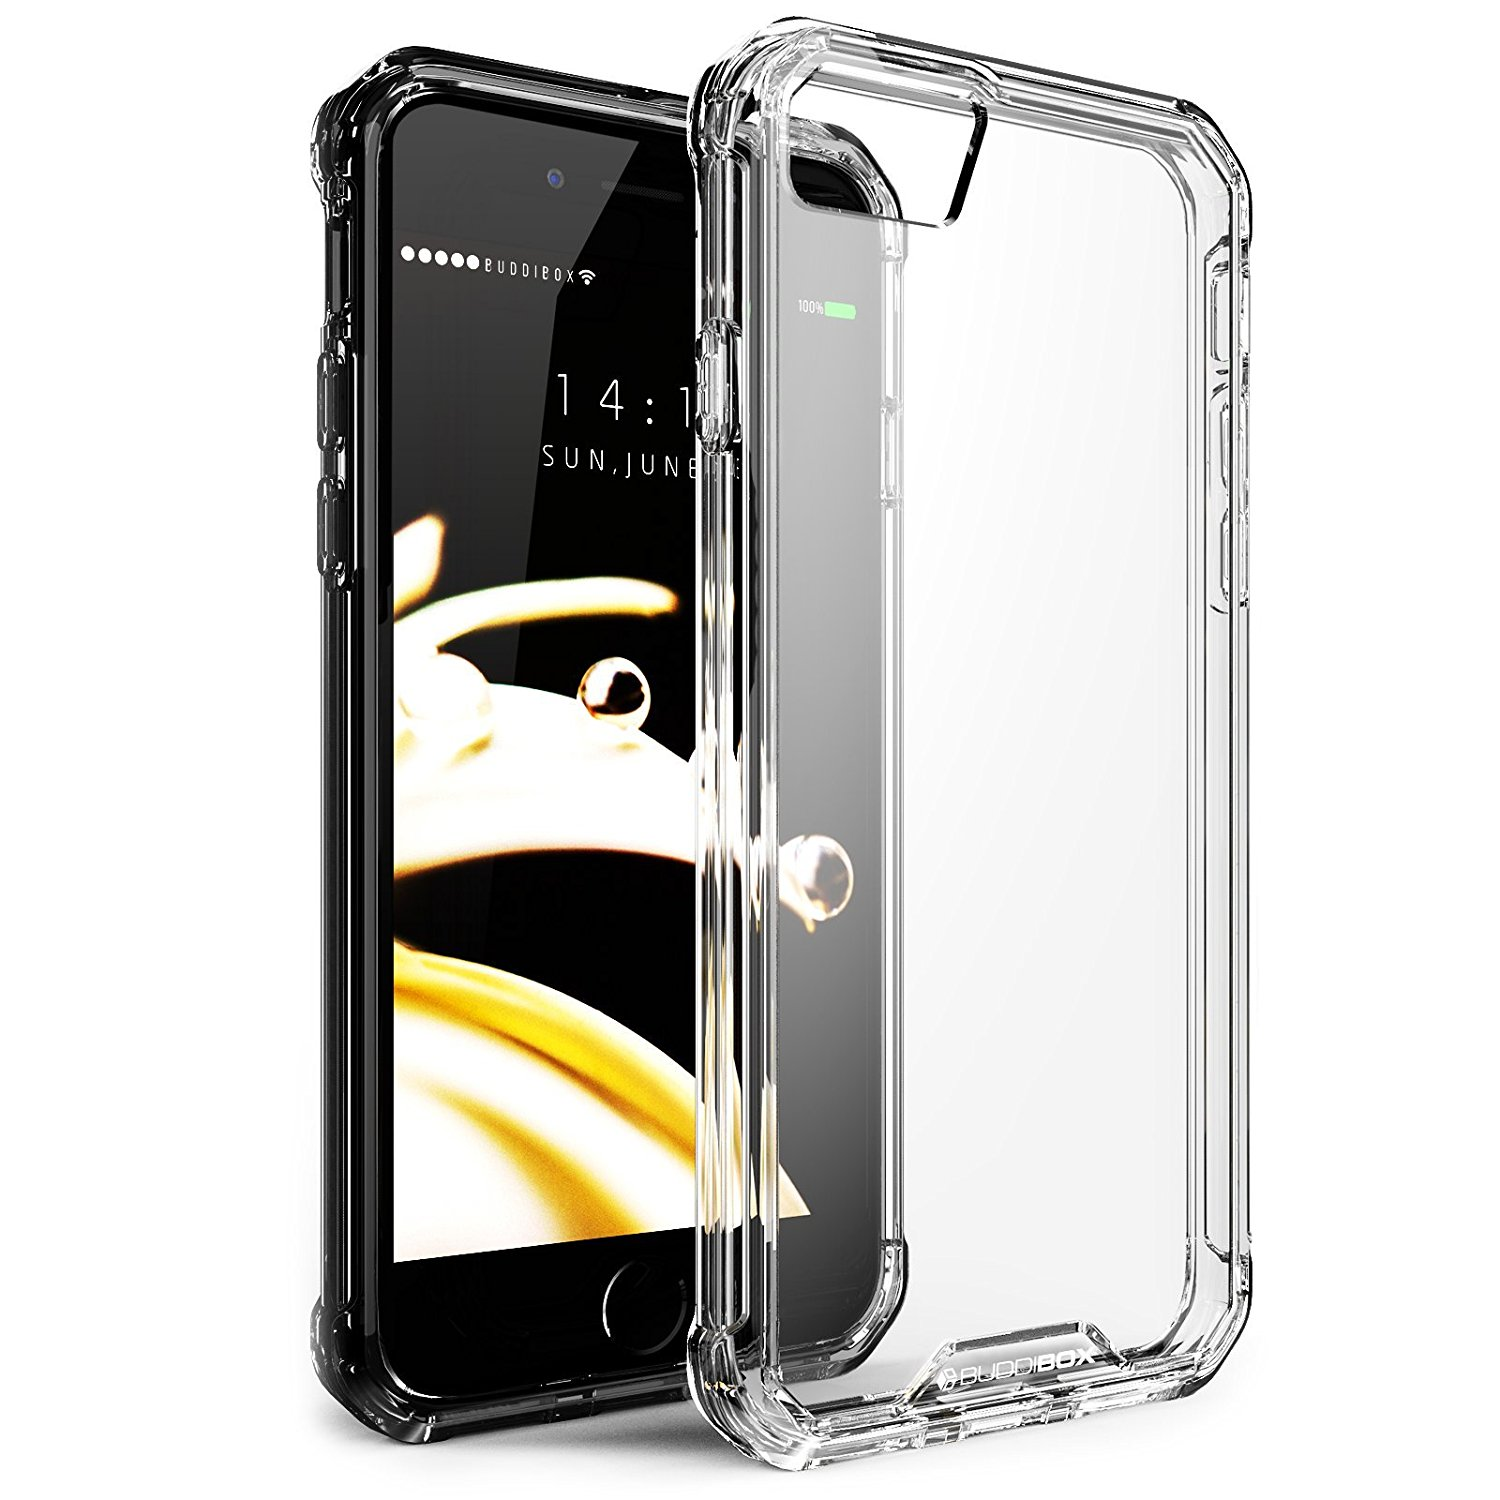 BUDDIBOX iPhone 7 Case [ICE] Scratch Resistant Clear Bumper Phone Cover Case for Apple iPhone 7